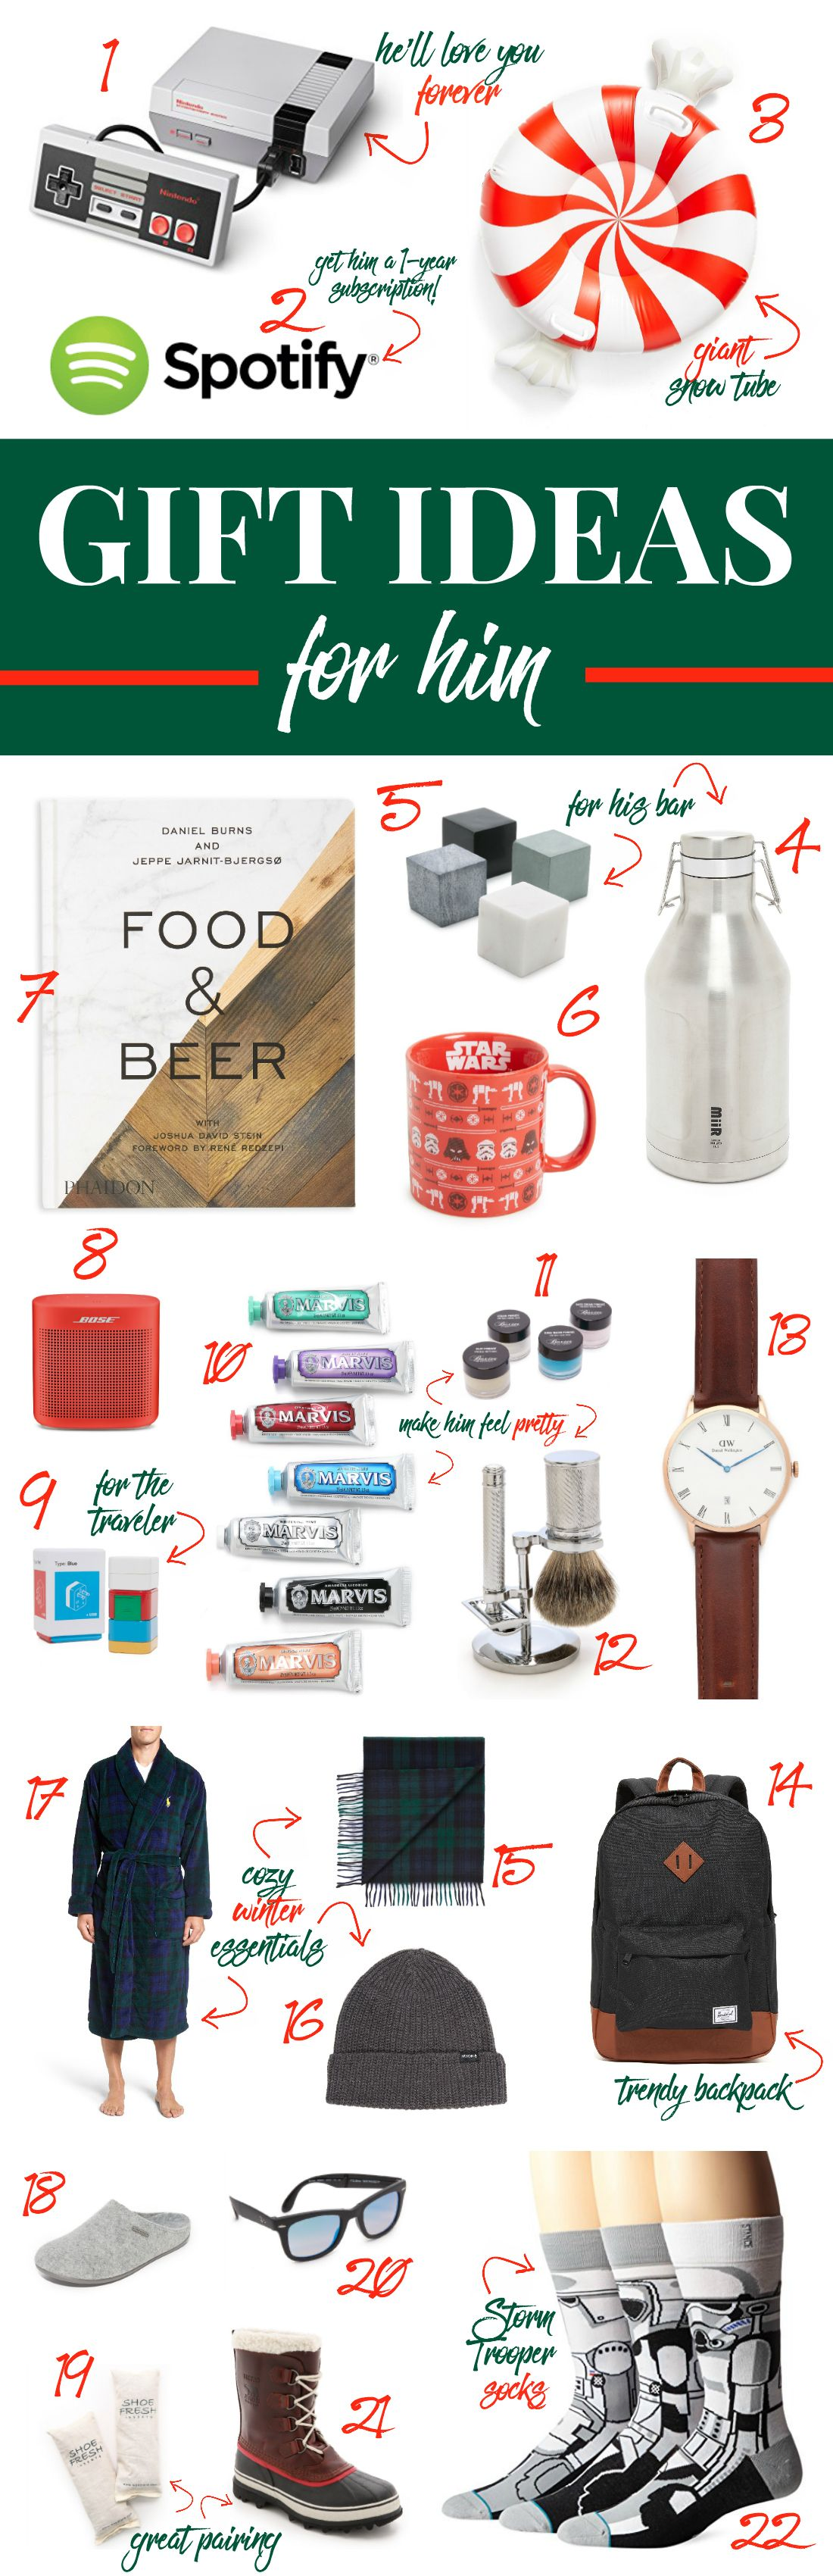 22 Awesome Gift Ideas for Hard-To-Buy-For Guys | Diary of a ...